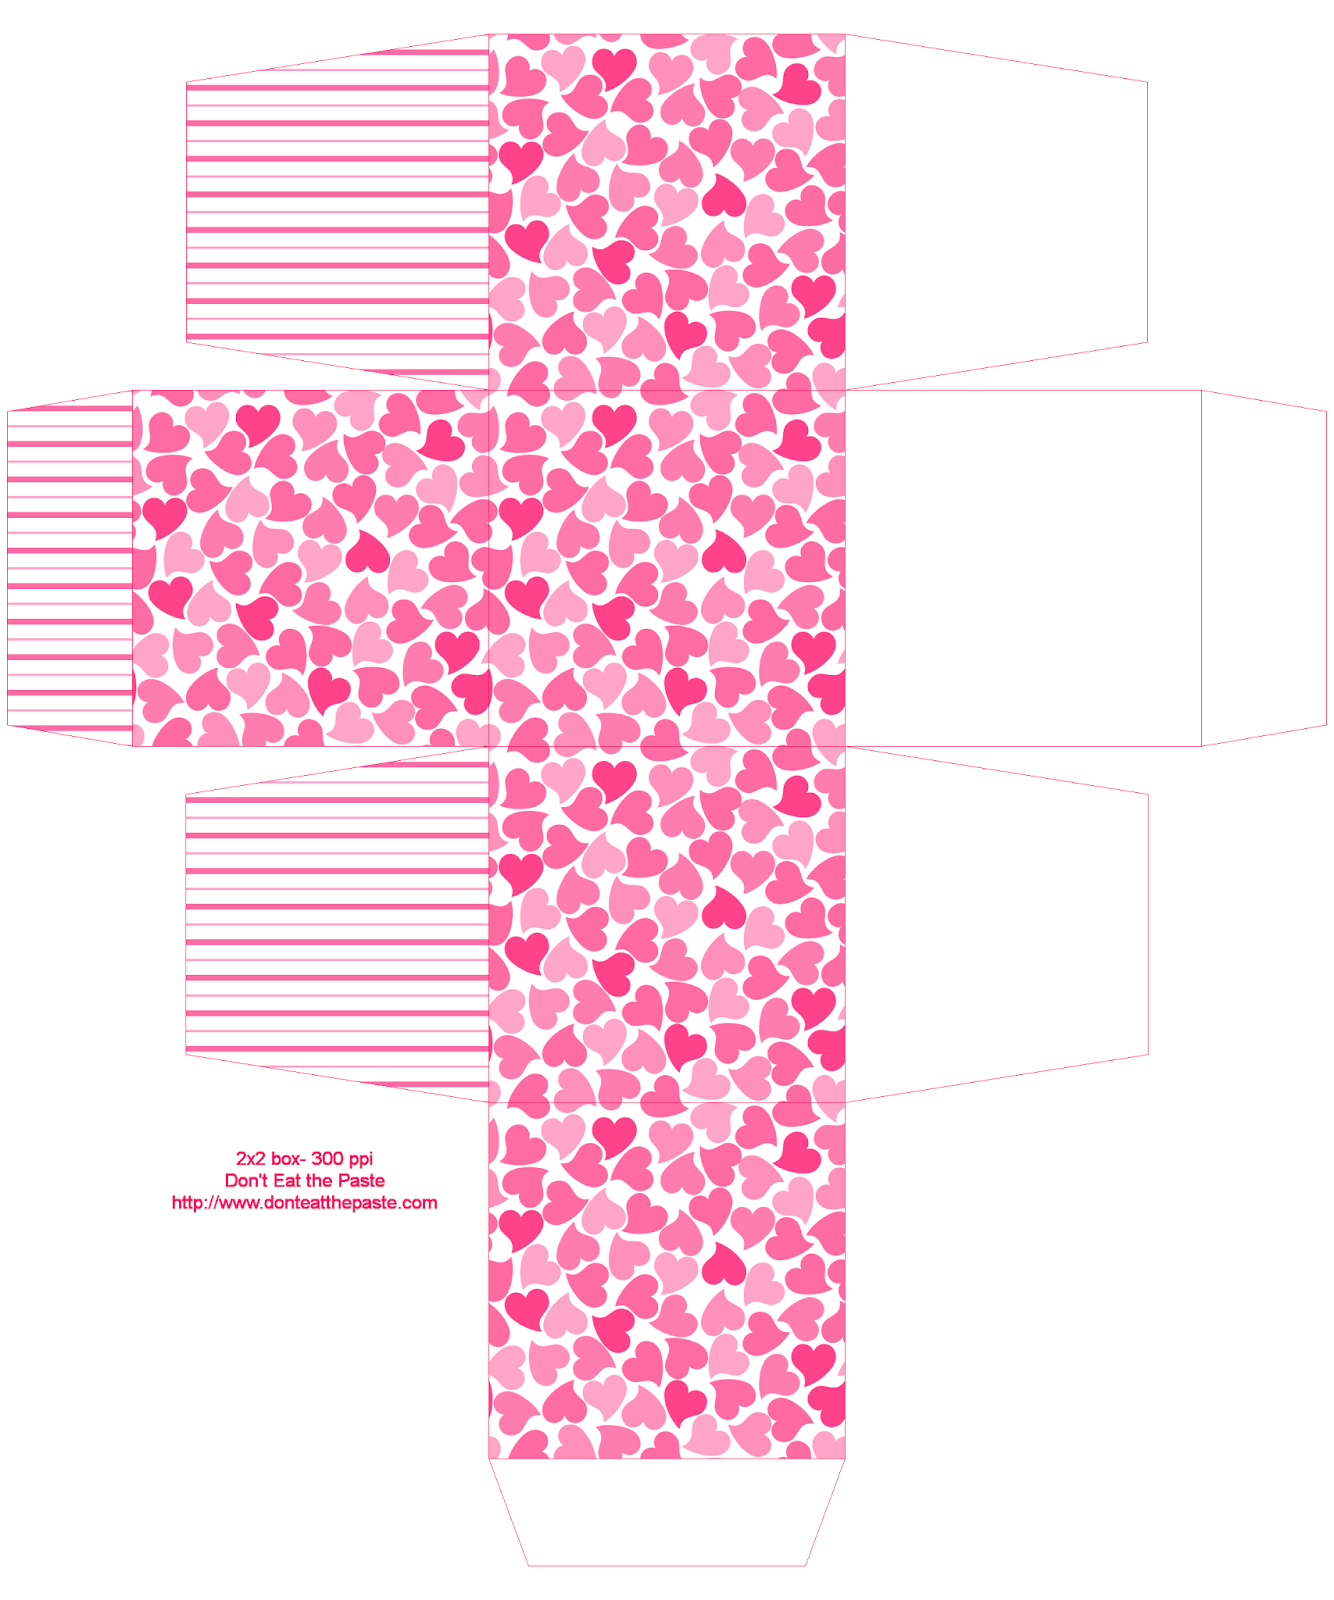 Printable hearts box - 2 sizes available (cube) #papercrafts #printables #giftbox